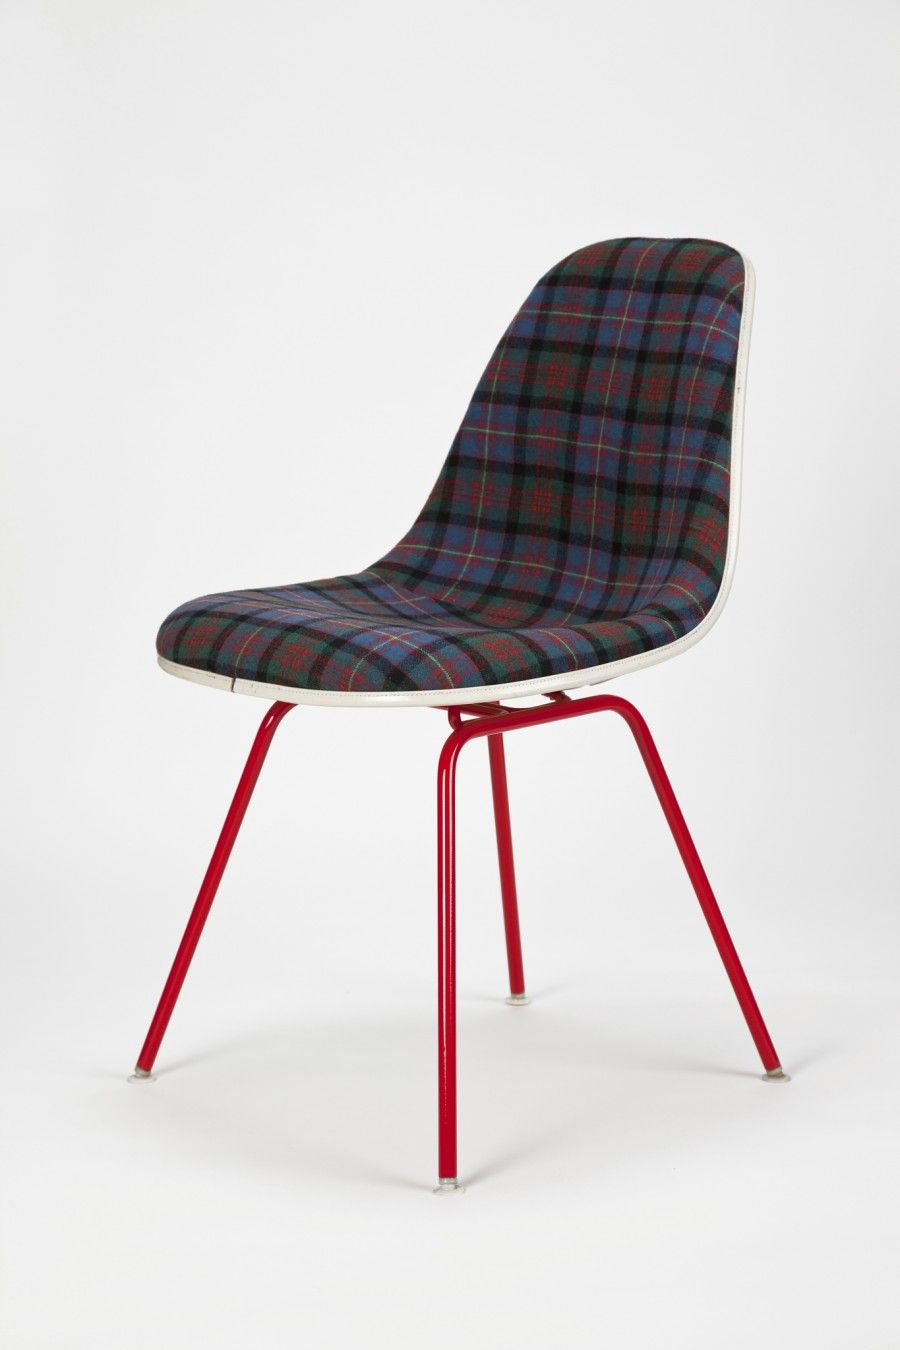 Find out how to upholster my Eameslike nonupholstered chair to – Eames Like Chair